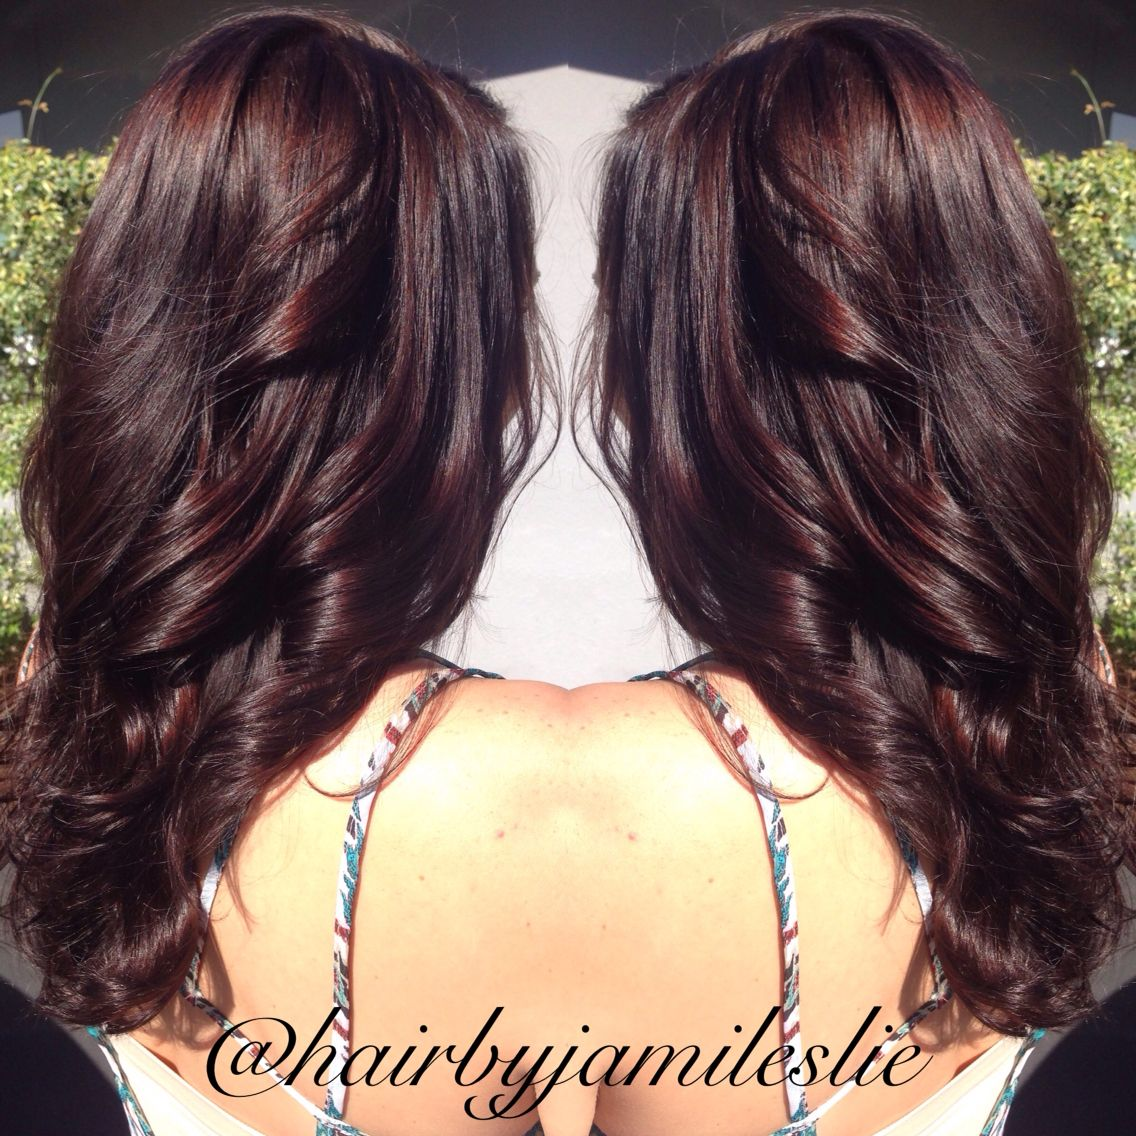 45 Shades of Burgundy Hair: Dark Burgundy, Maroon, Burgundy with ...